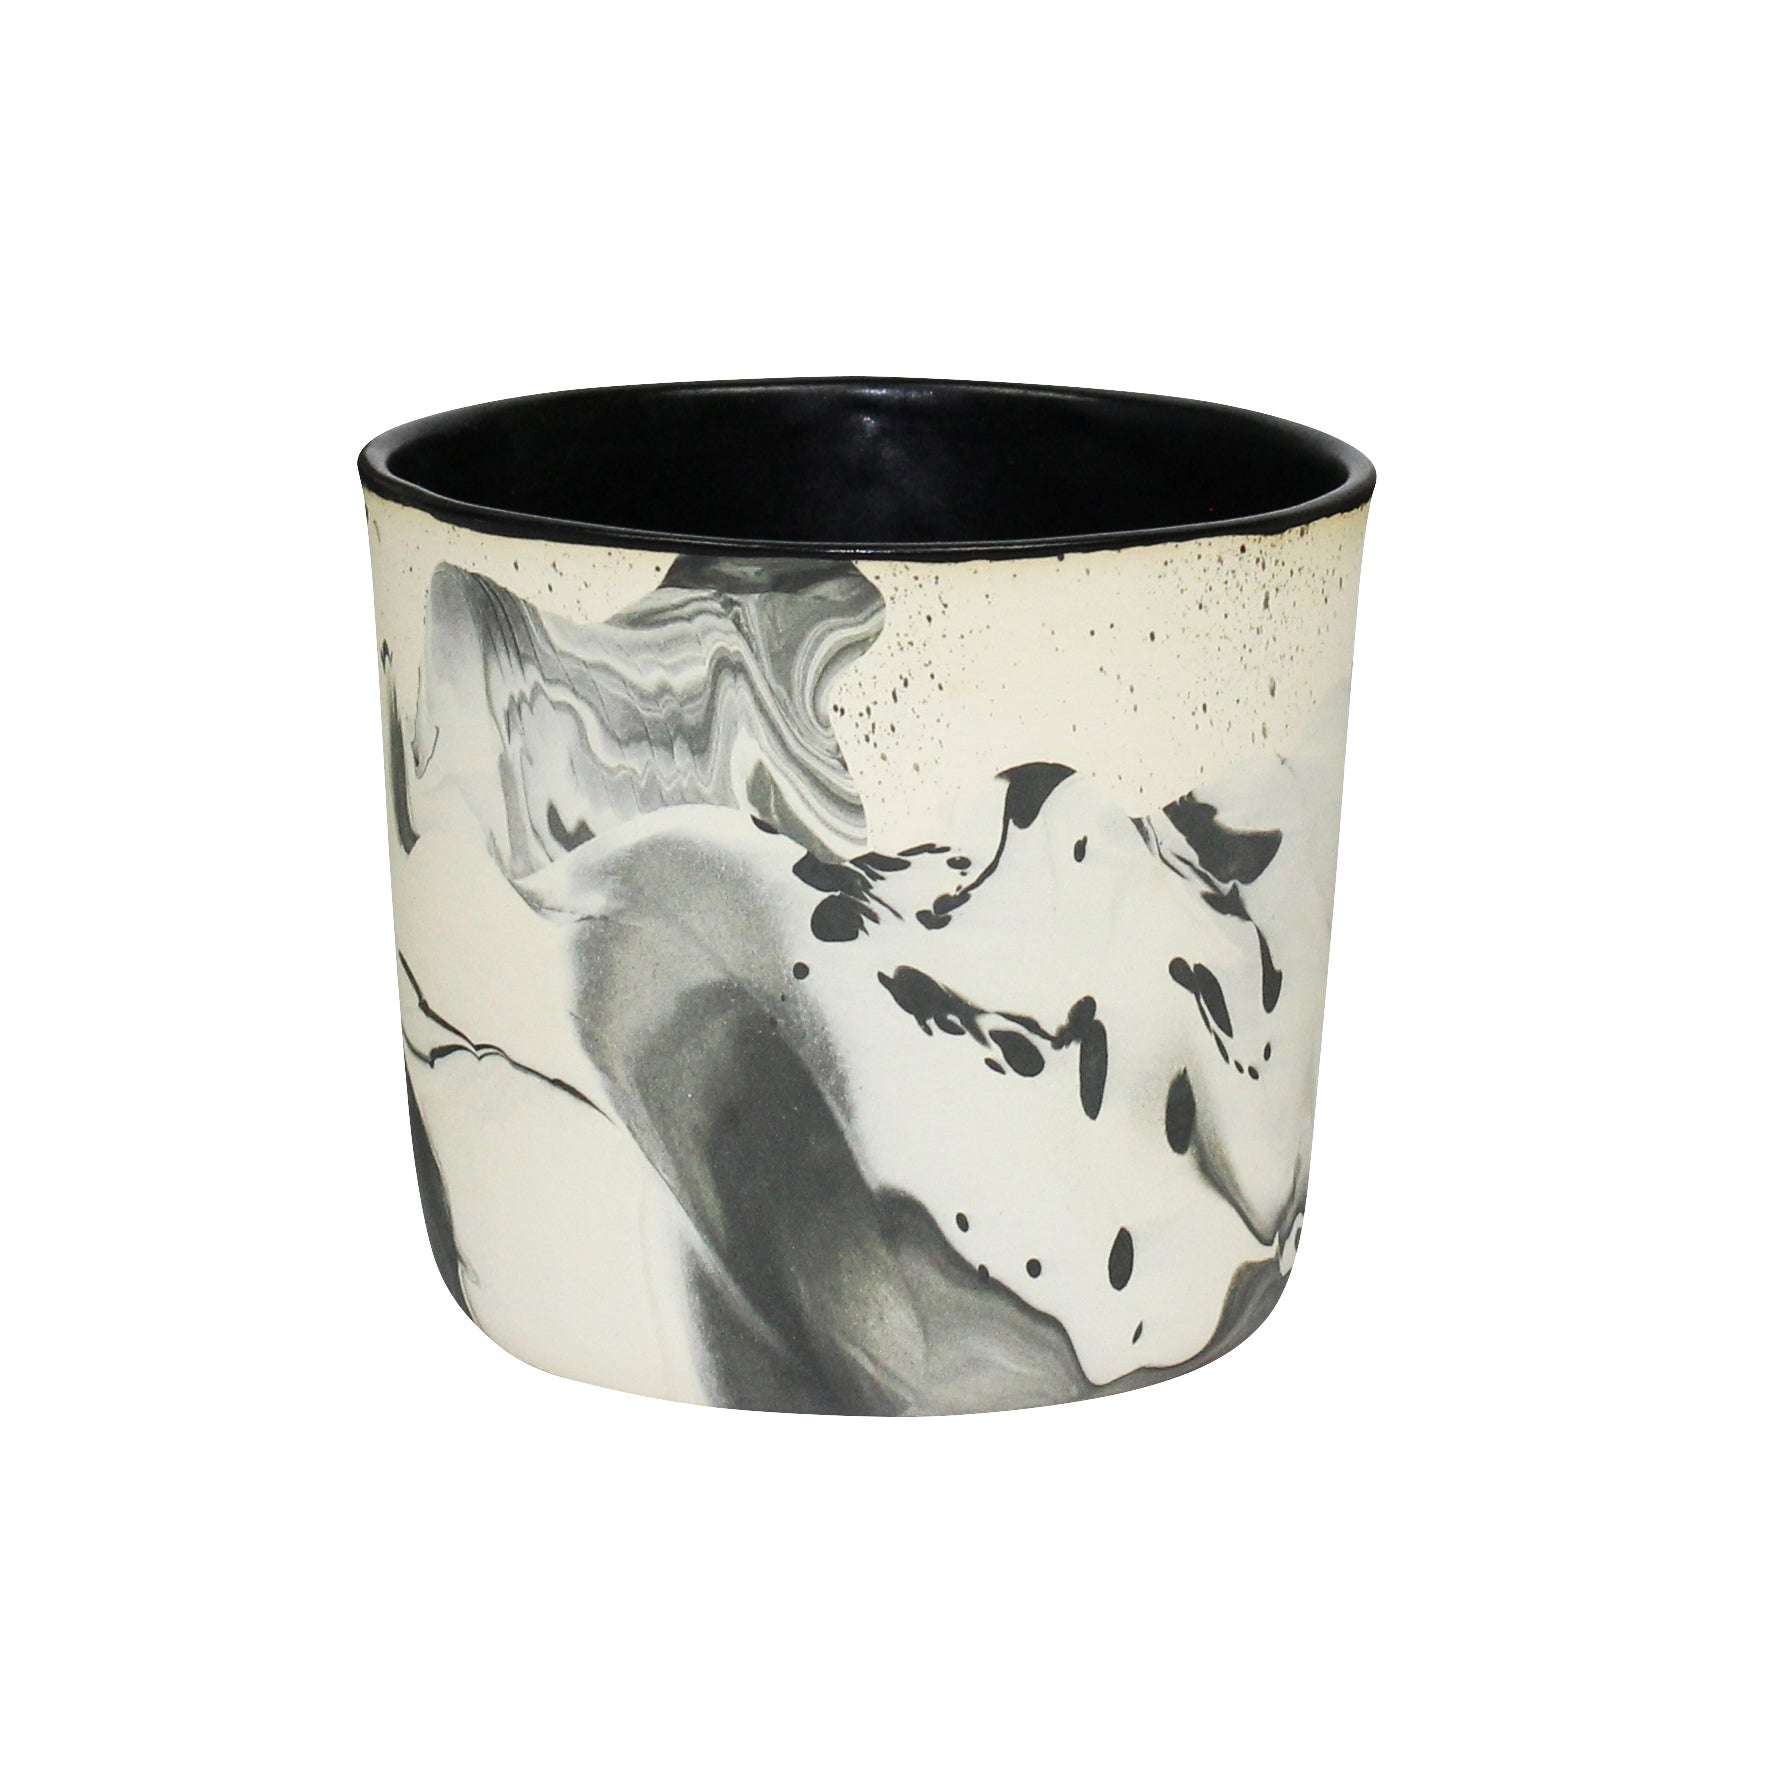 Contemporary Handmade Marbled Ceramic Cup in Black and White